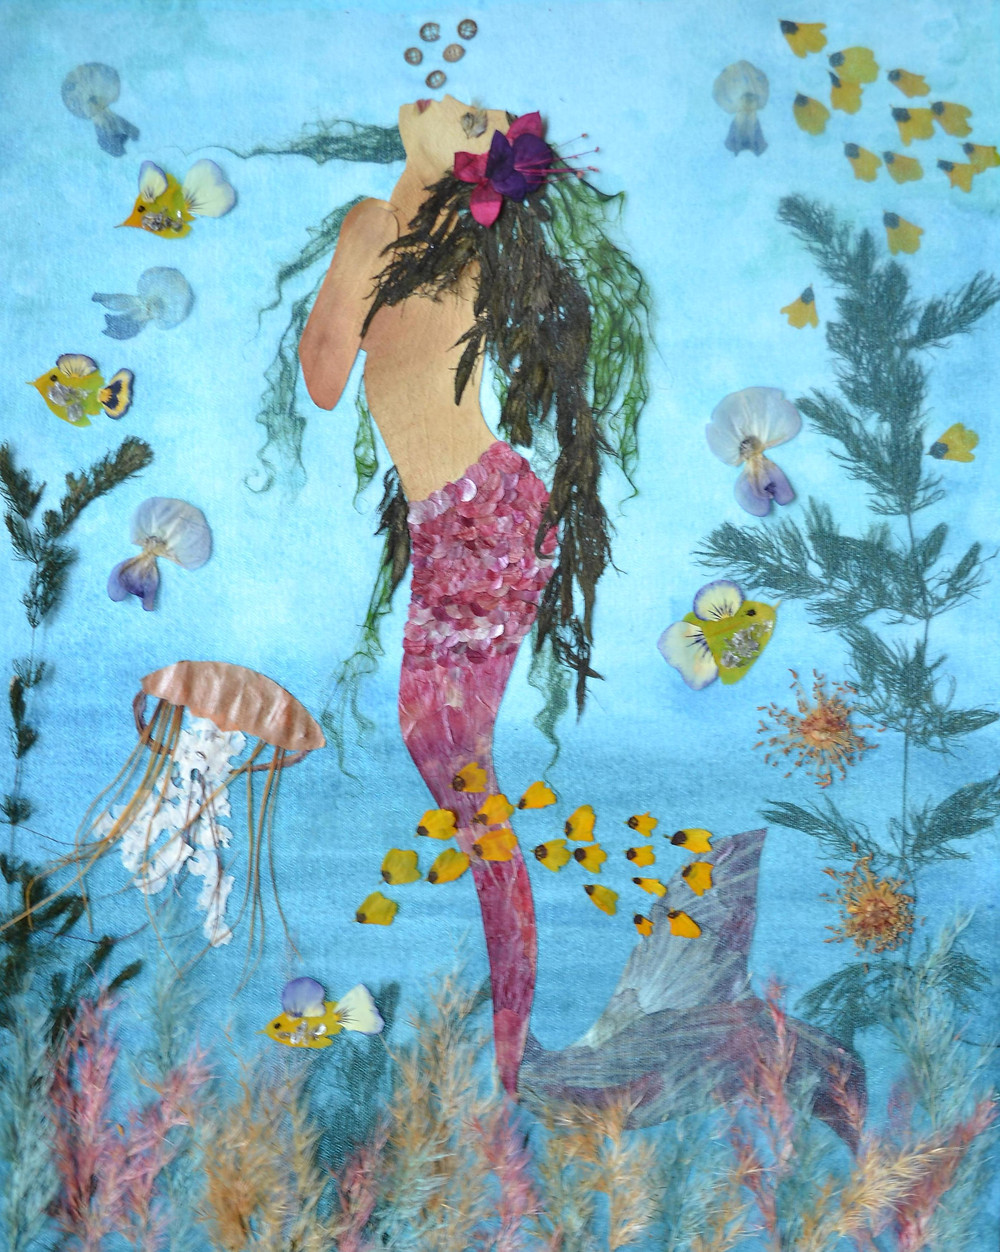 The seafloor. Colorful seaweeds are growing on the seafloor. Different creatures of Marin life as fish, Jellyfish and others. A beautiful Mermaid is looking to the top.